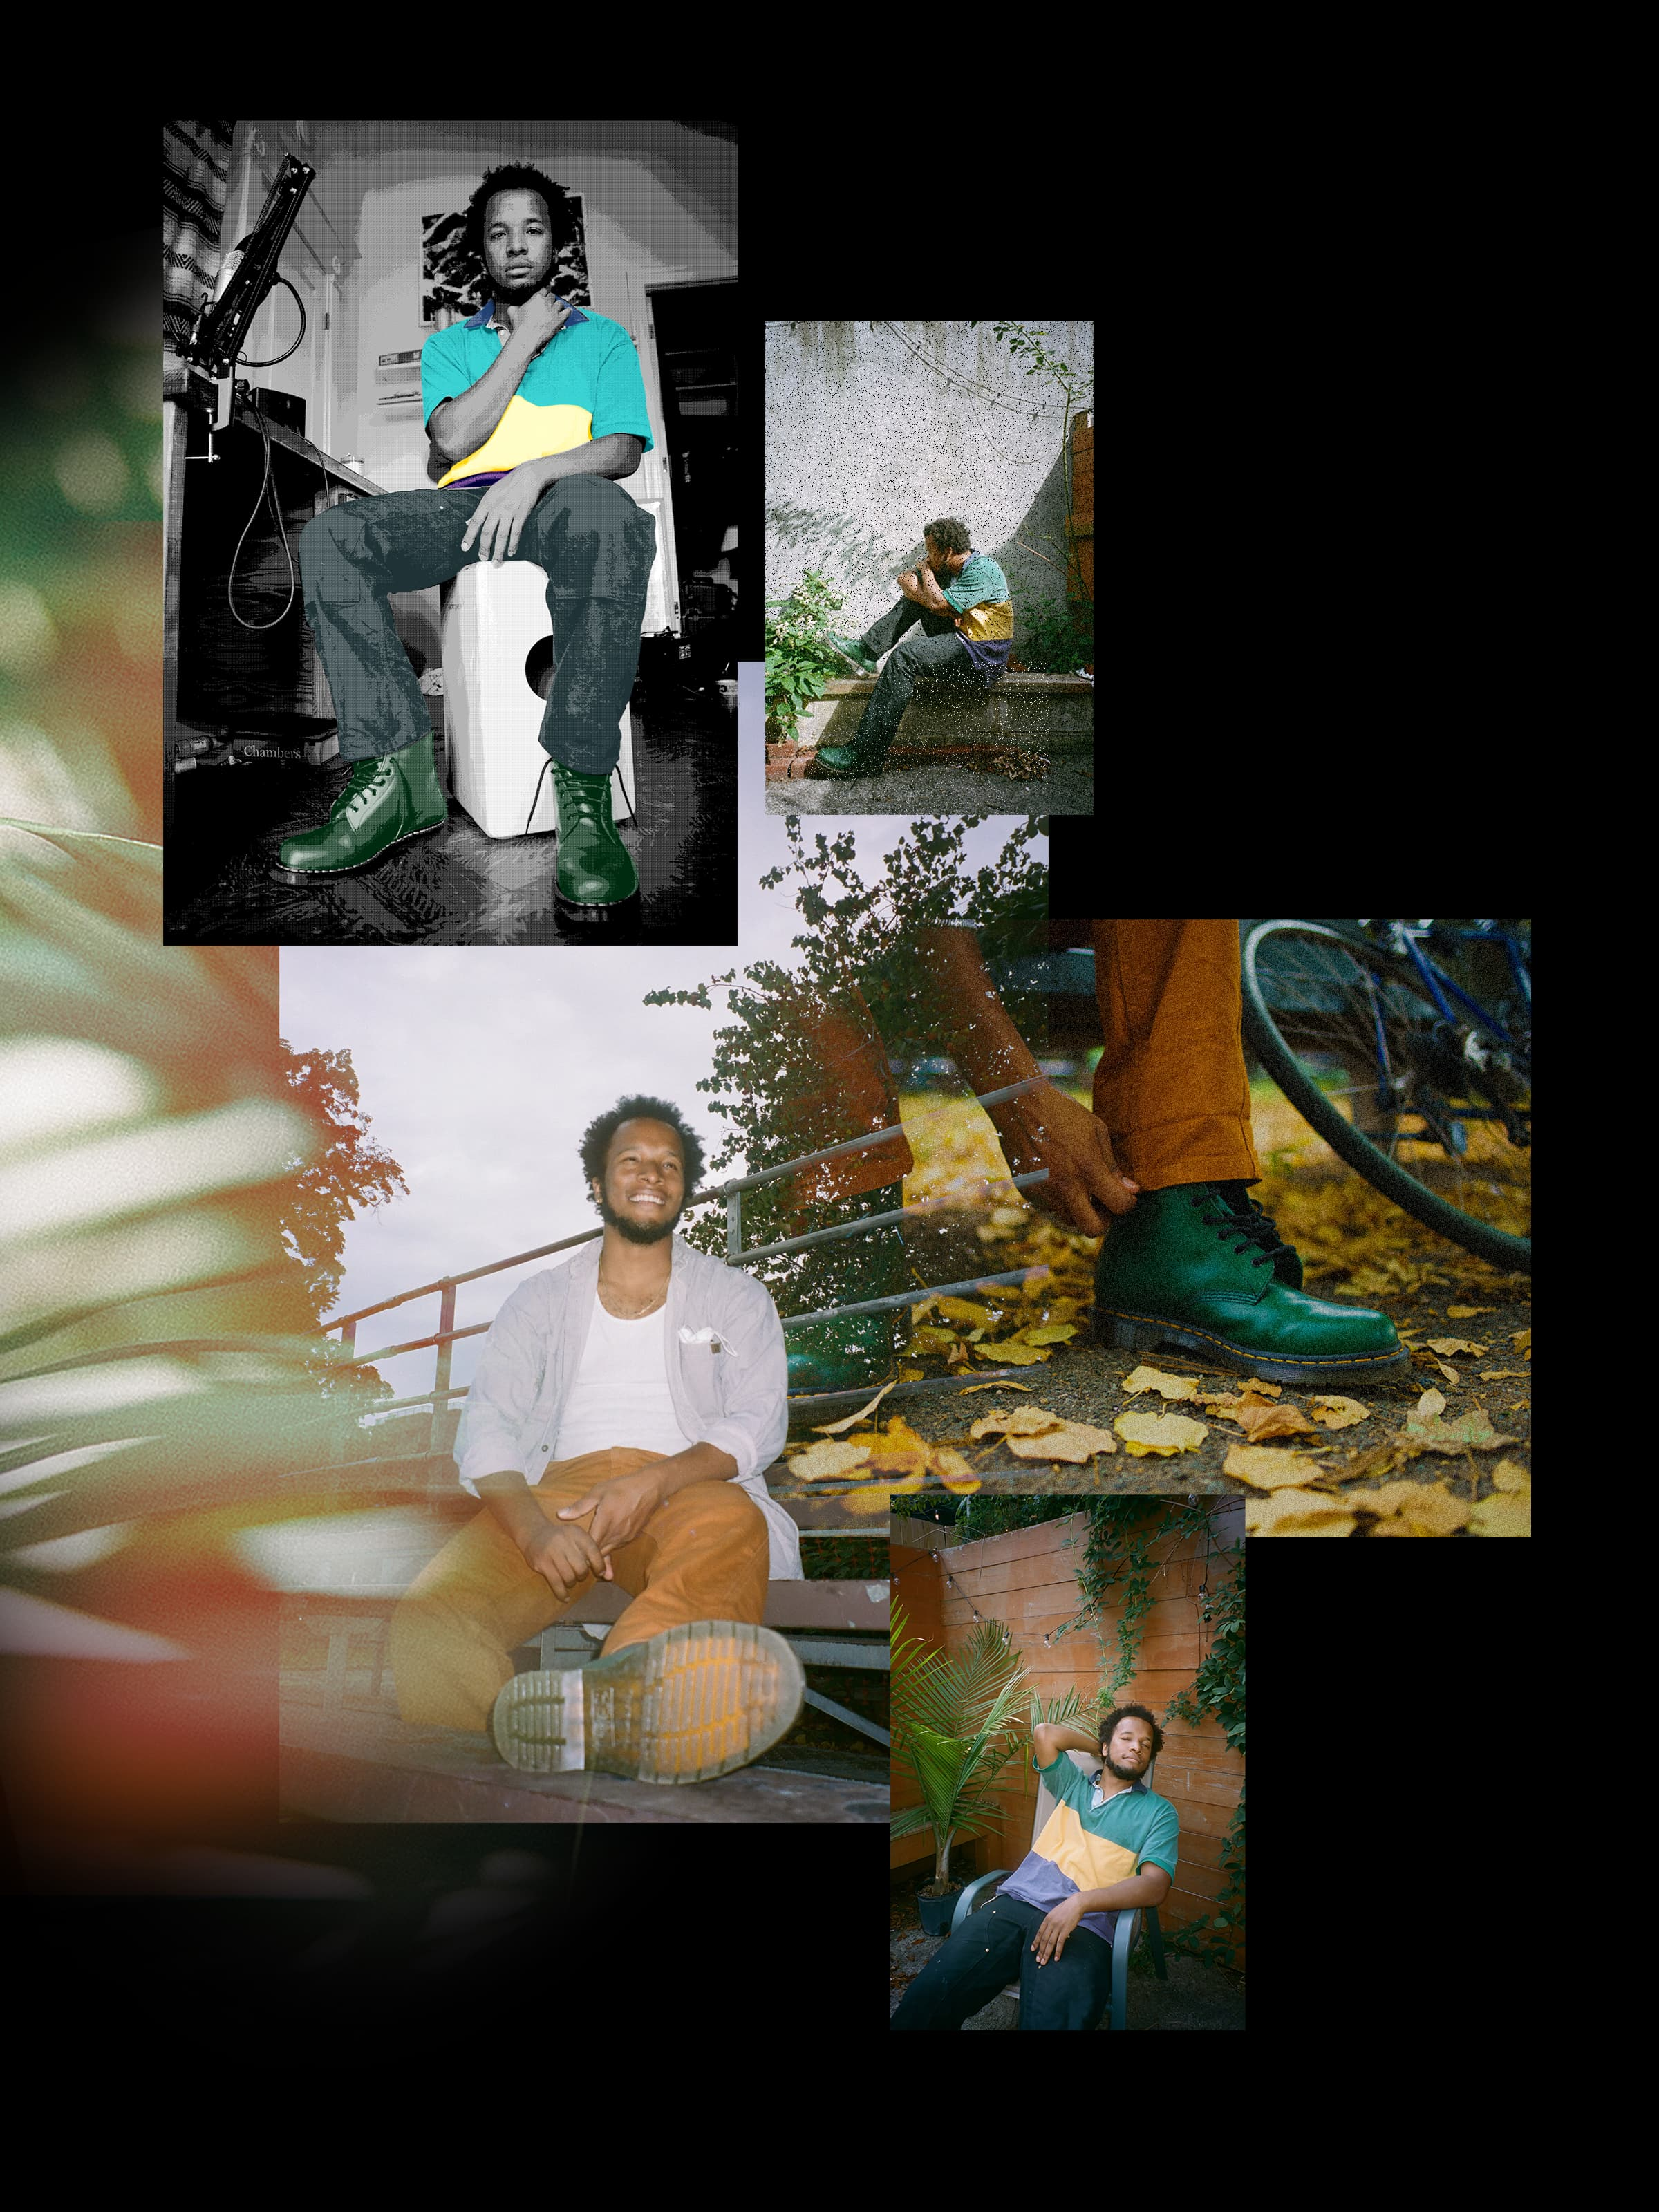 A collage of photos of Clay in ordinary life situations, his emotions range from happy and relaxed to thoughtful.